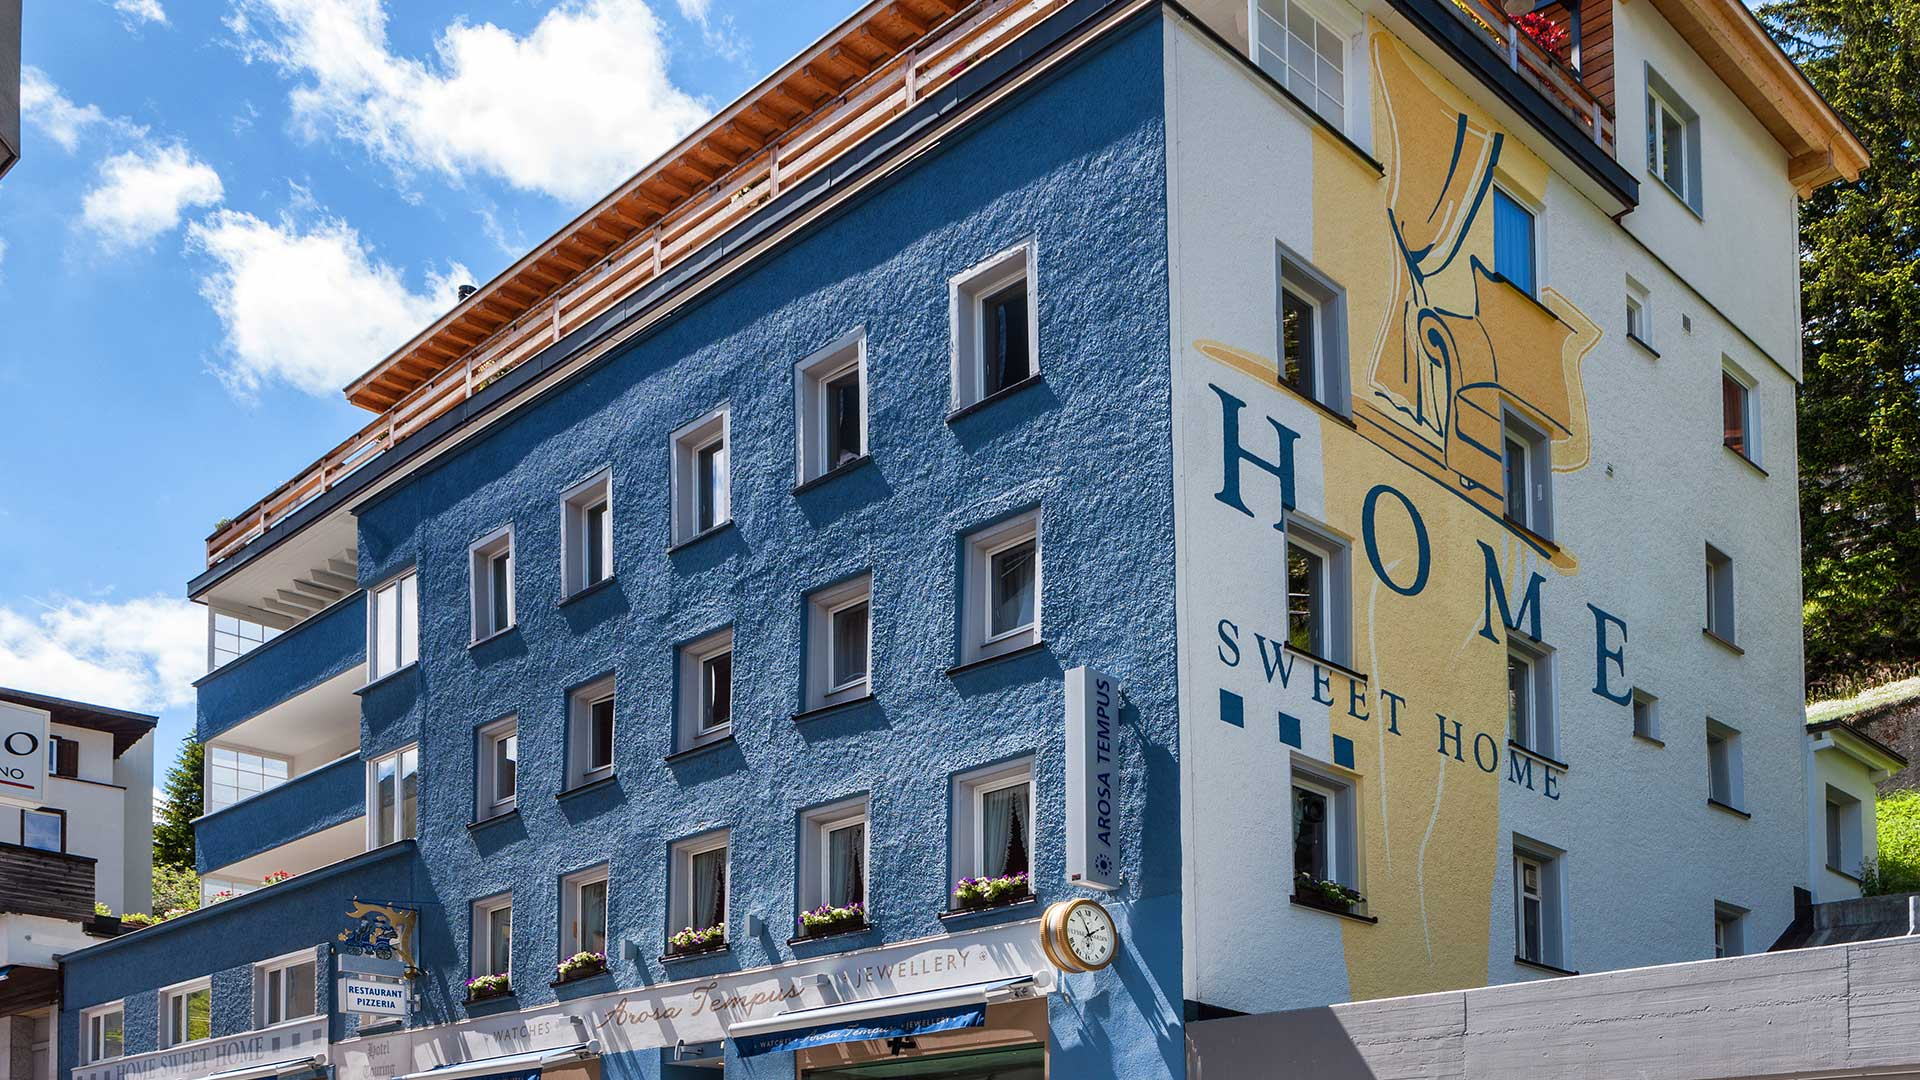 Home Hotel Hotel, Switzerland